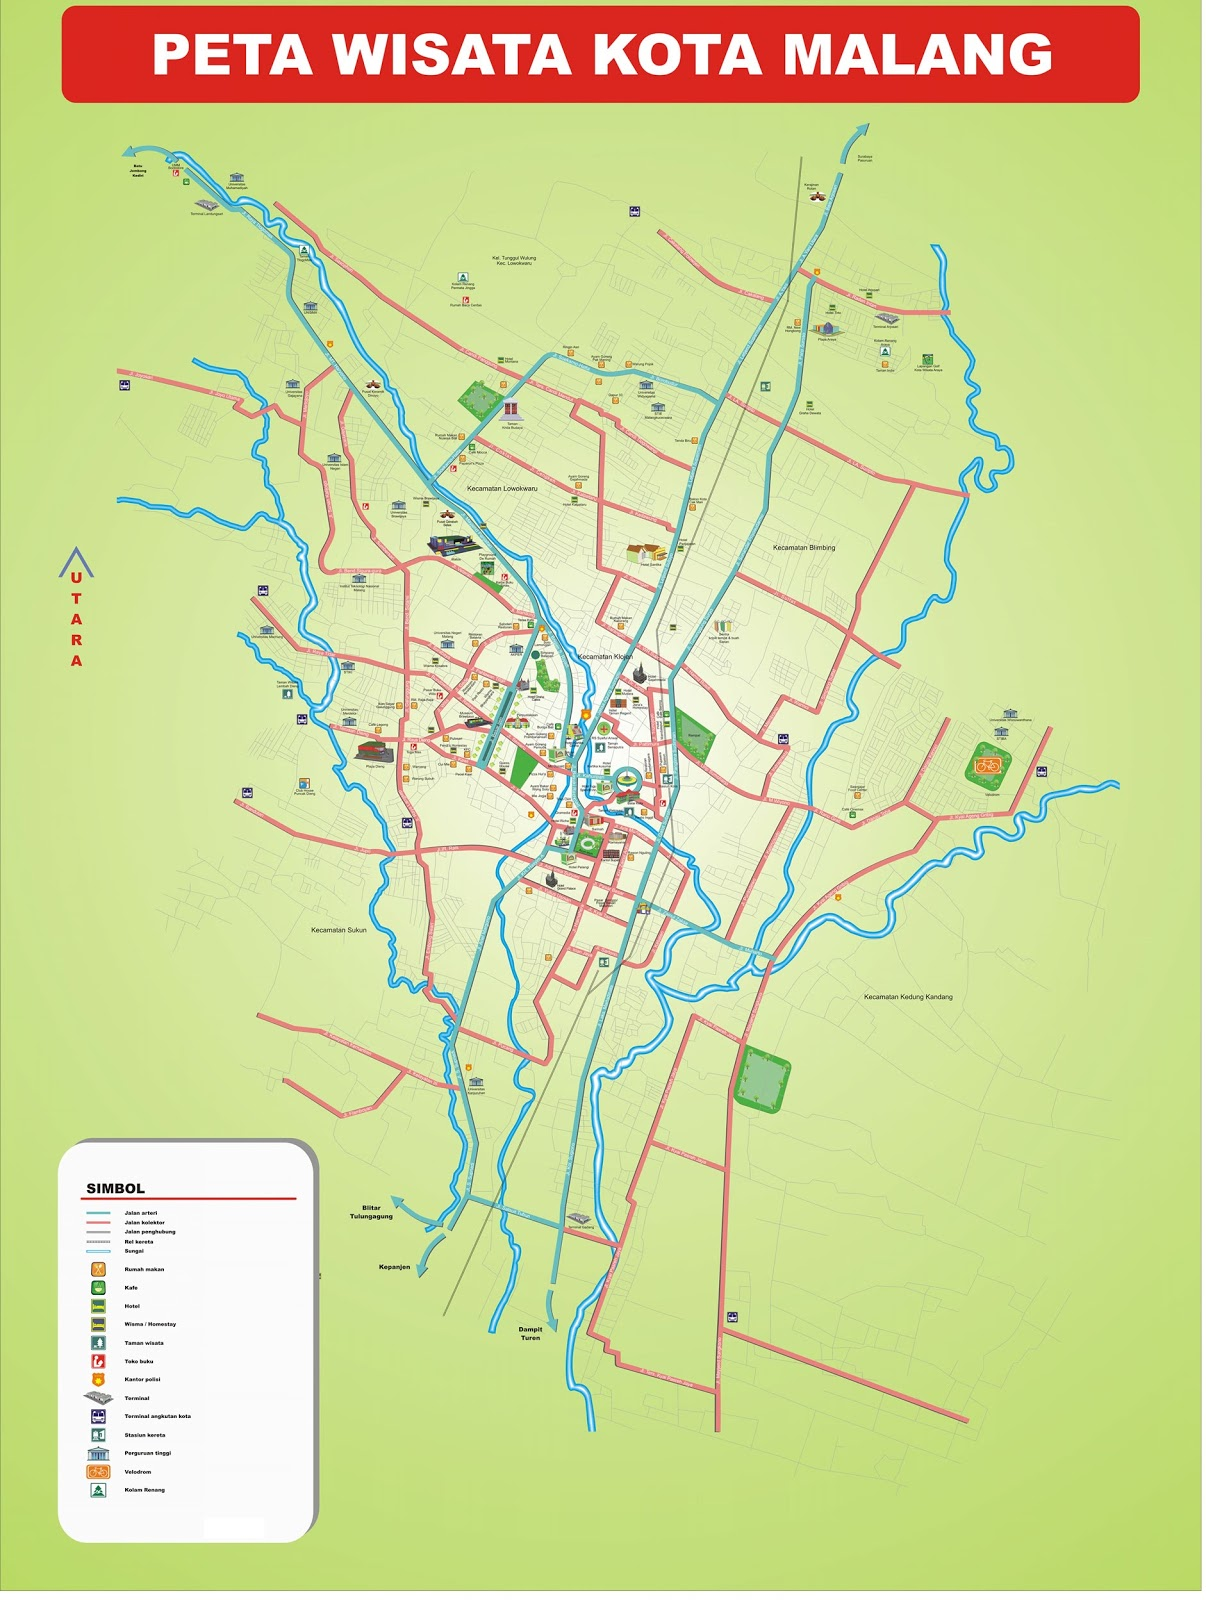 AMAZING INDONESIA MALANG CITY AND DISTRICT MAP